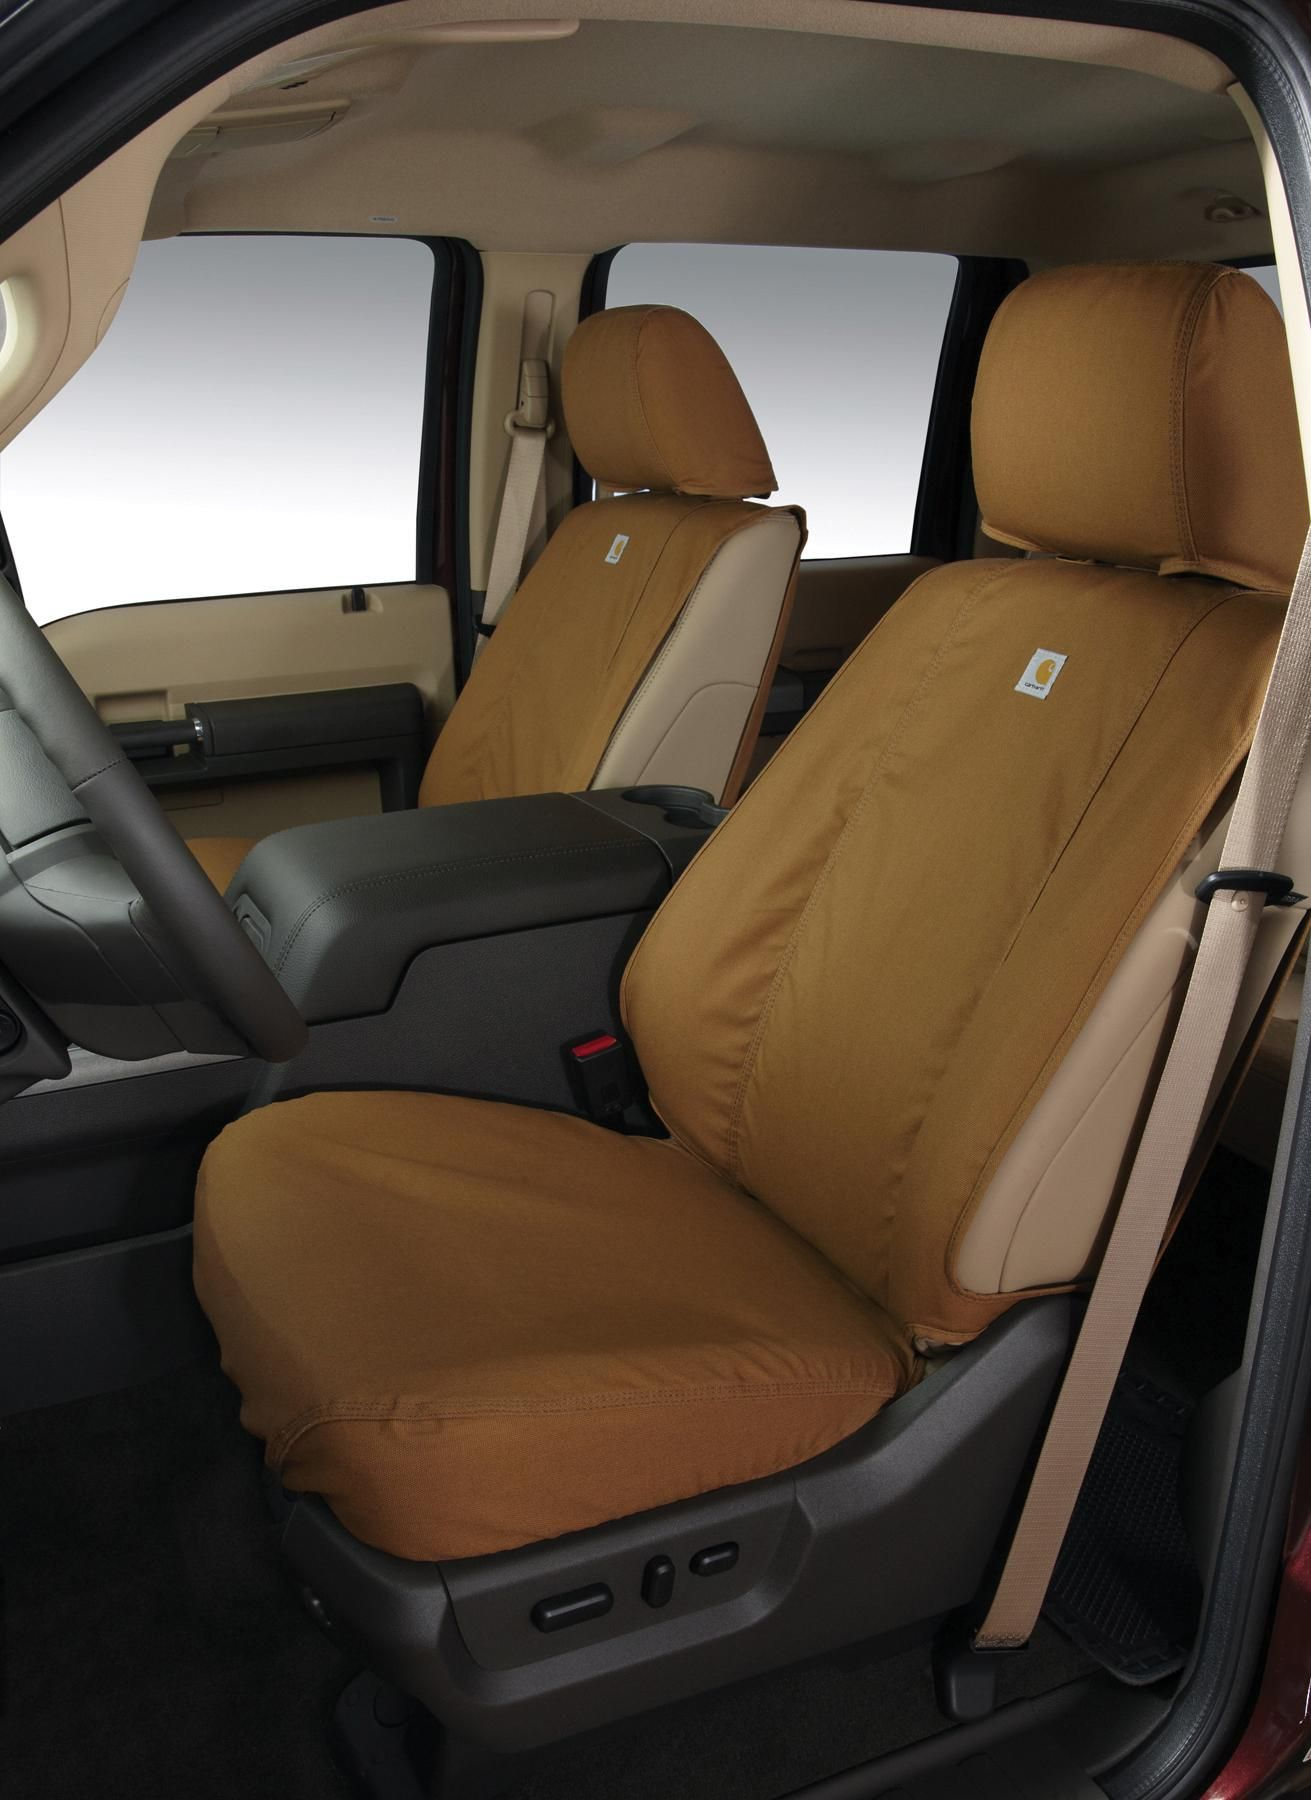 Seat Covers - Rear Crew Cab, 60/40 with Armrest